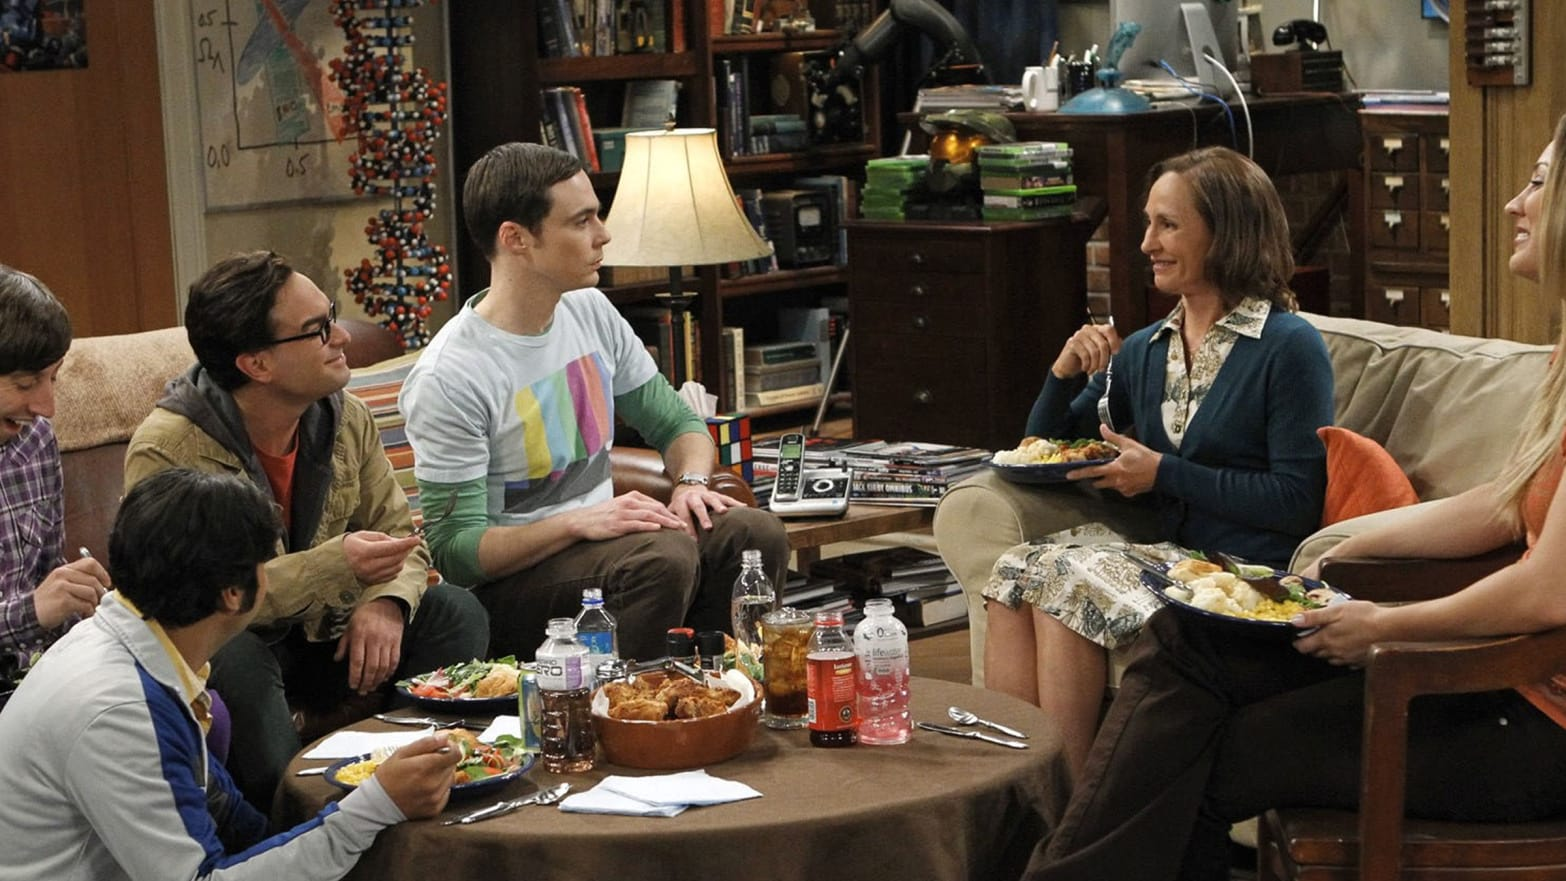 'The Big Bang Theory' Aired Its Series Finale, But I'll Always Love It